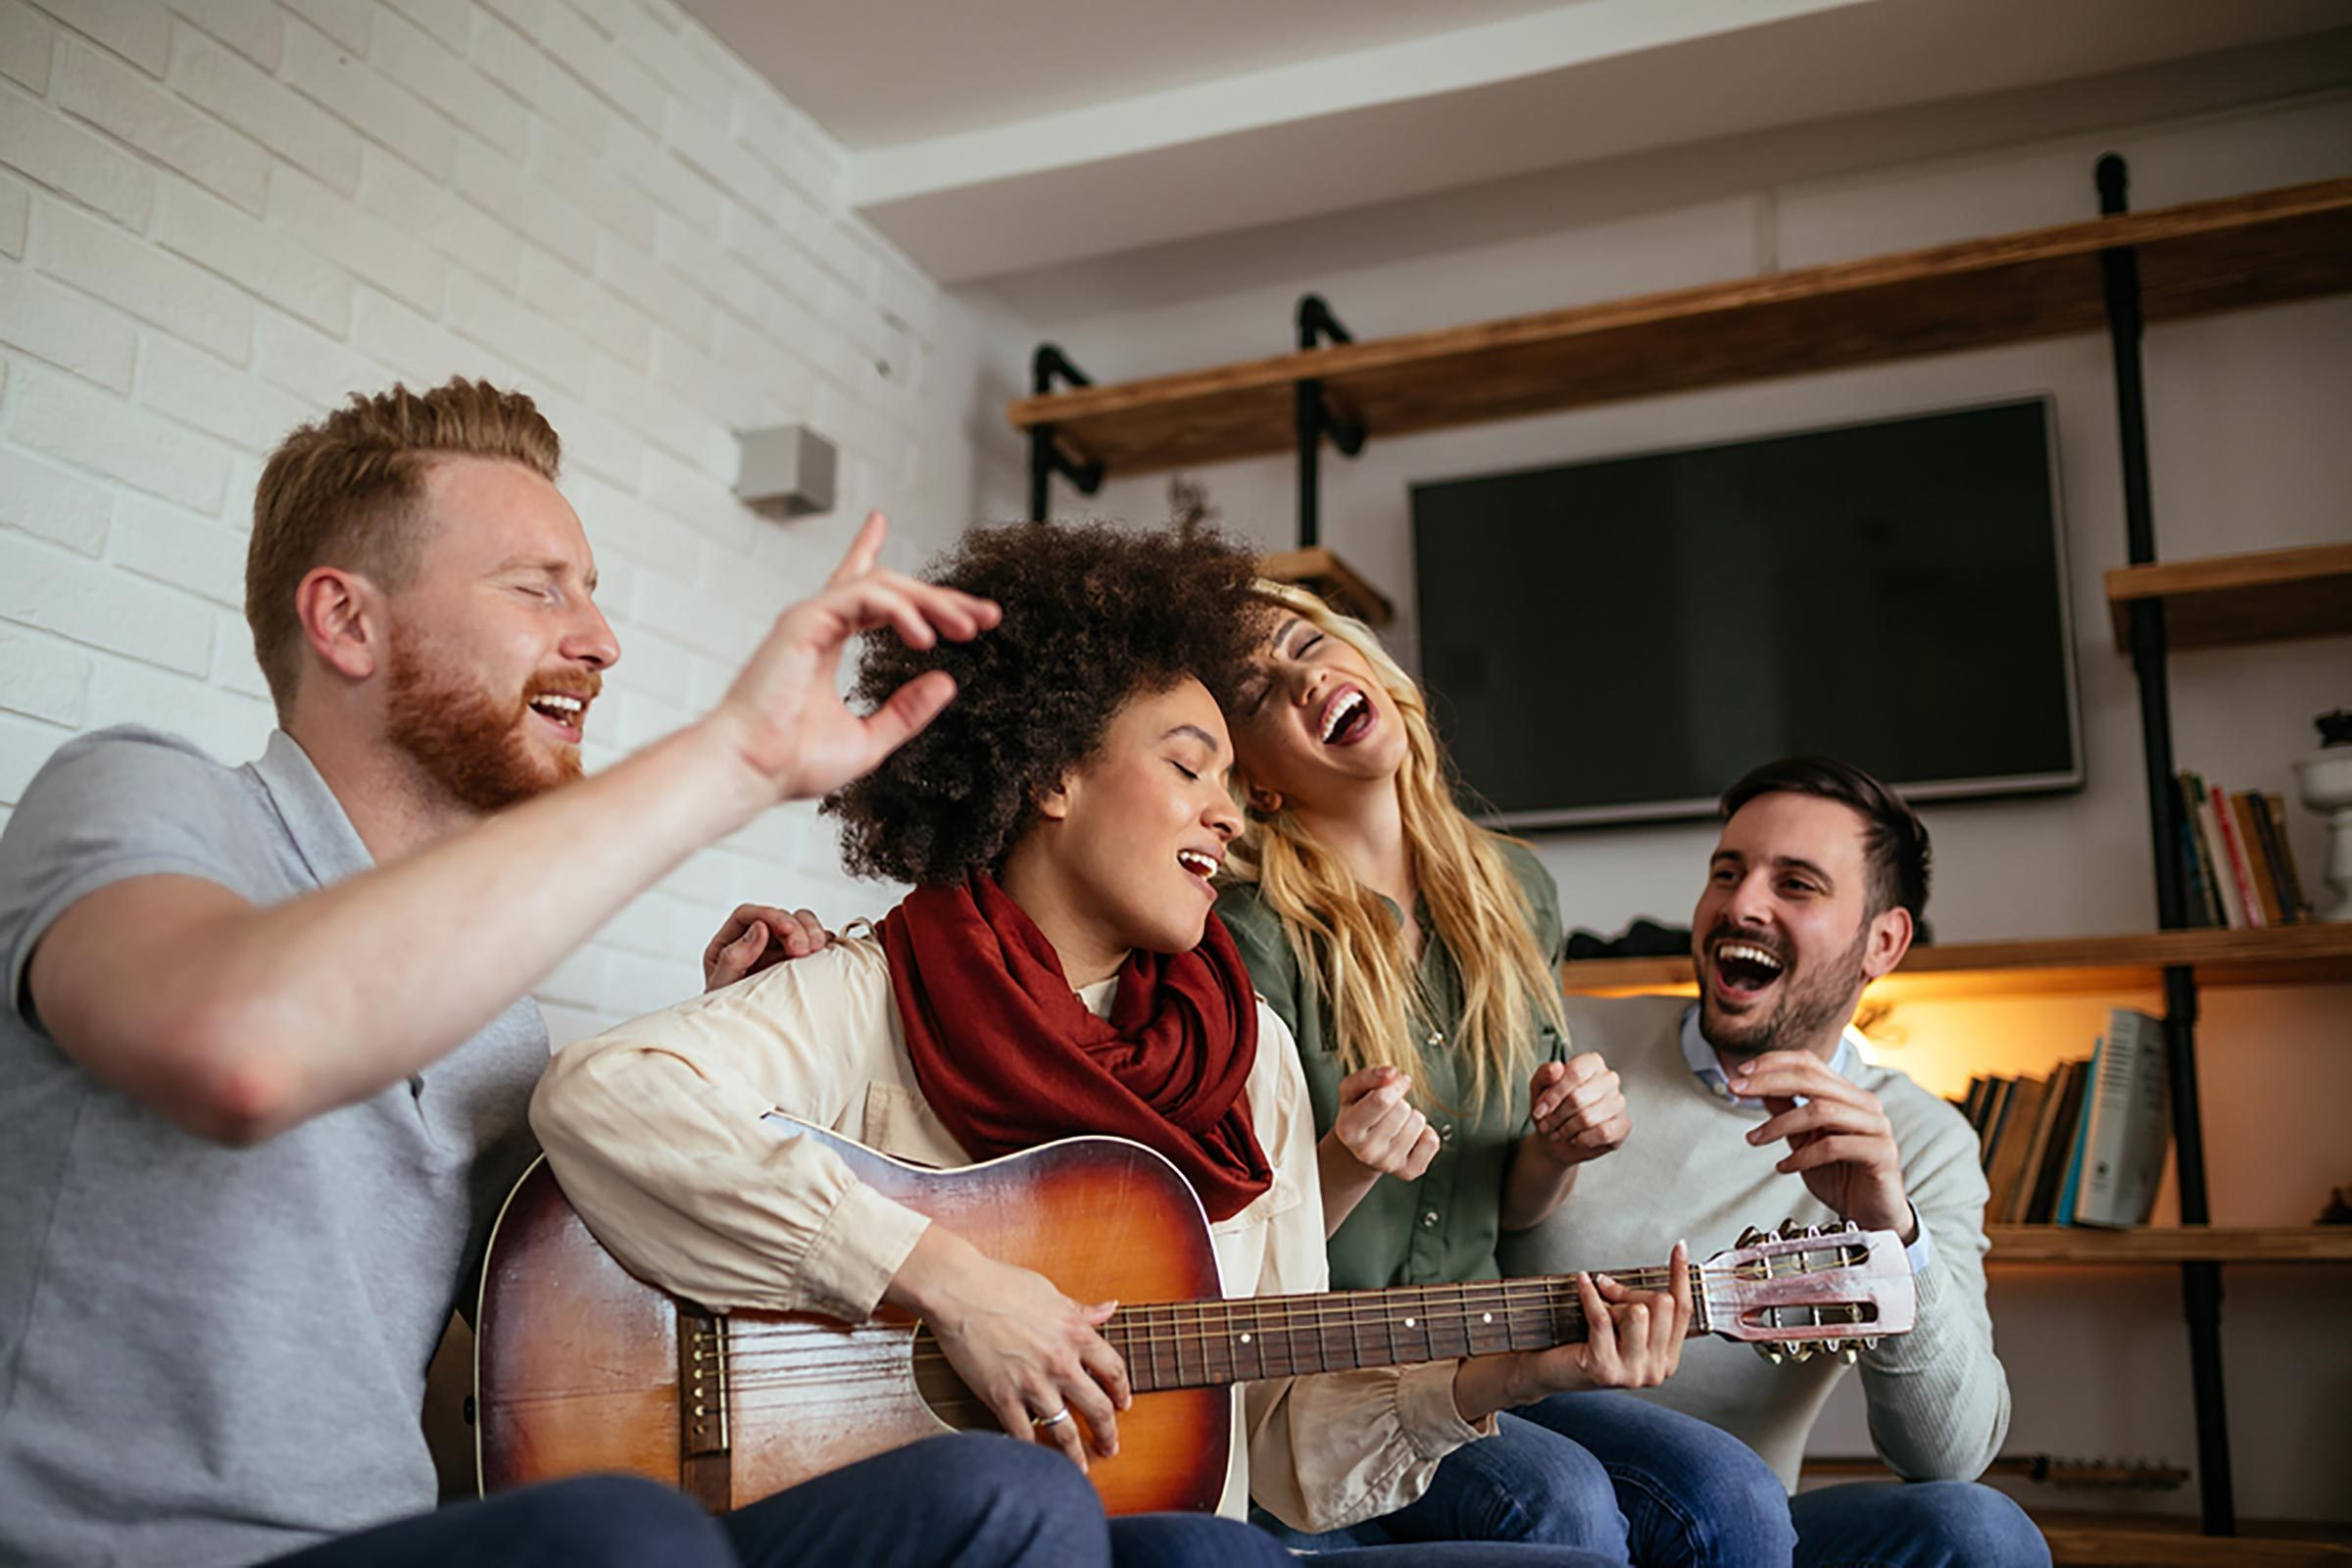 Boost your immunity naturally | 4 people singing